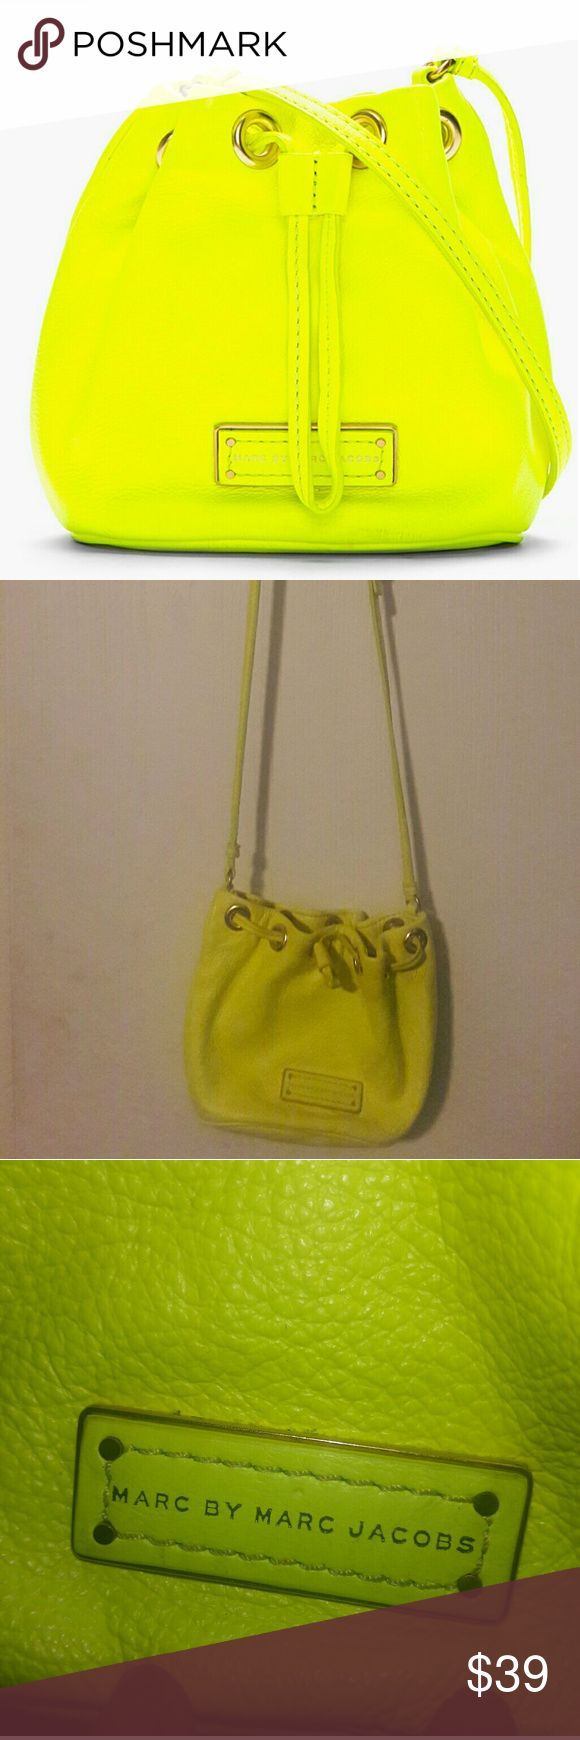 Marc Jacobs purse Fashion Slayer! Mini Neon Crossbody Purse, gently used Marc By Marc Jacobs Bags Crossbody Bags